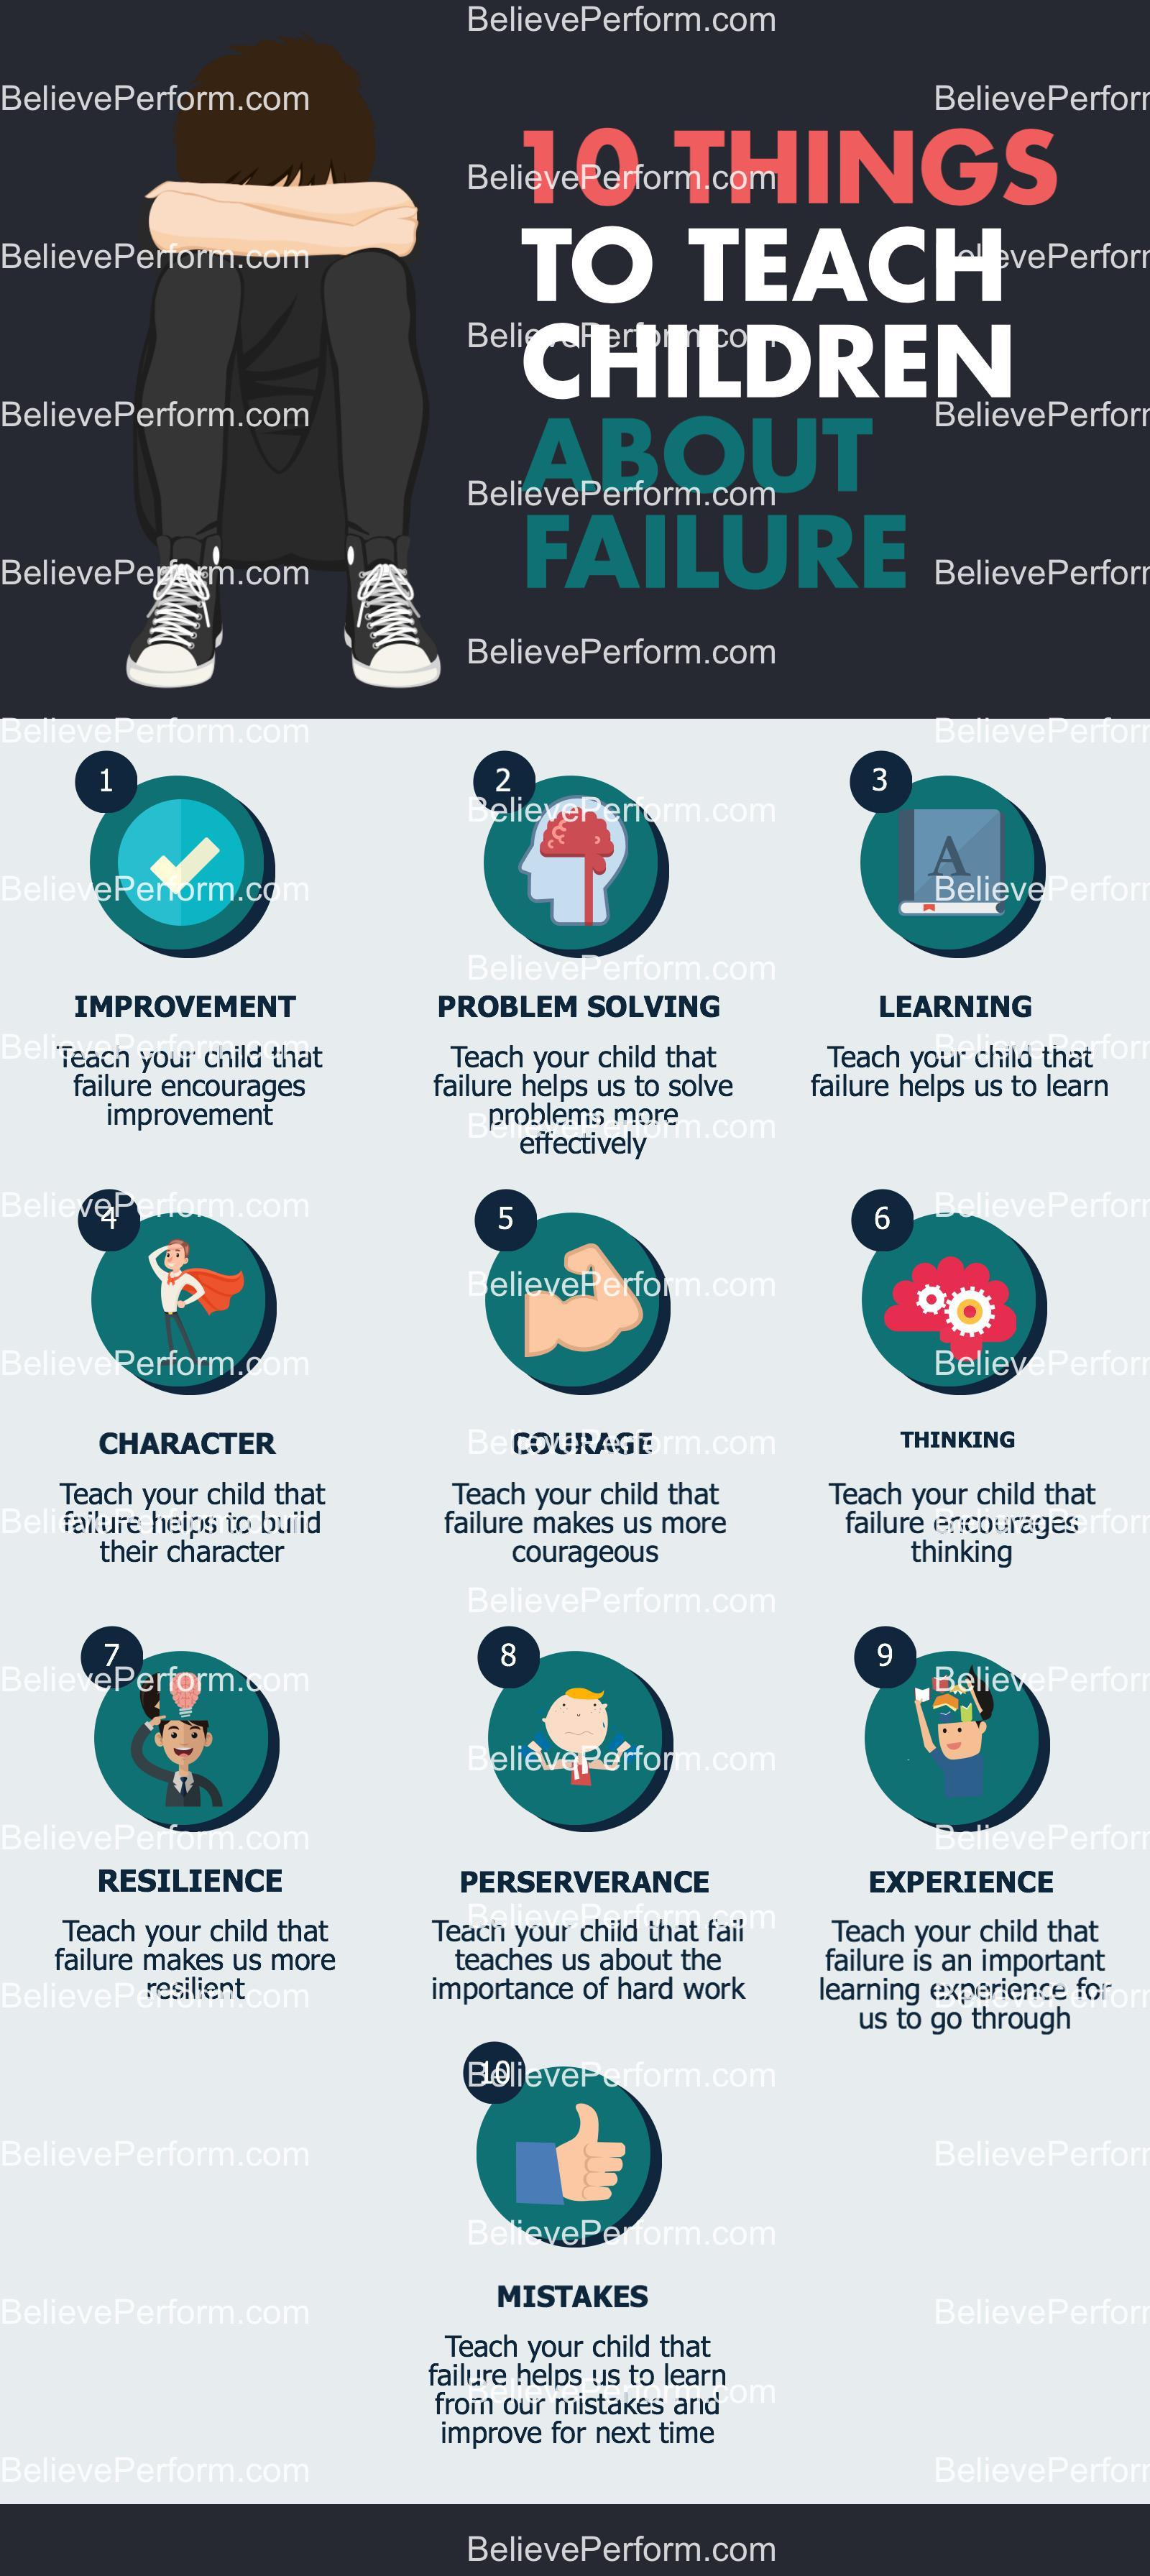 10 things to teach children about failure